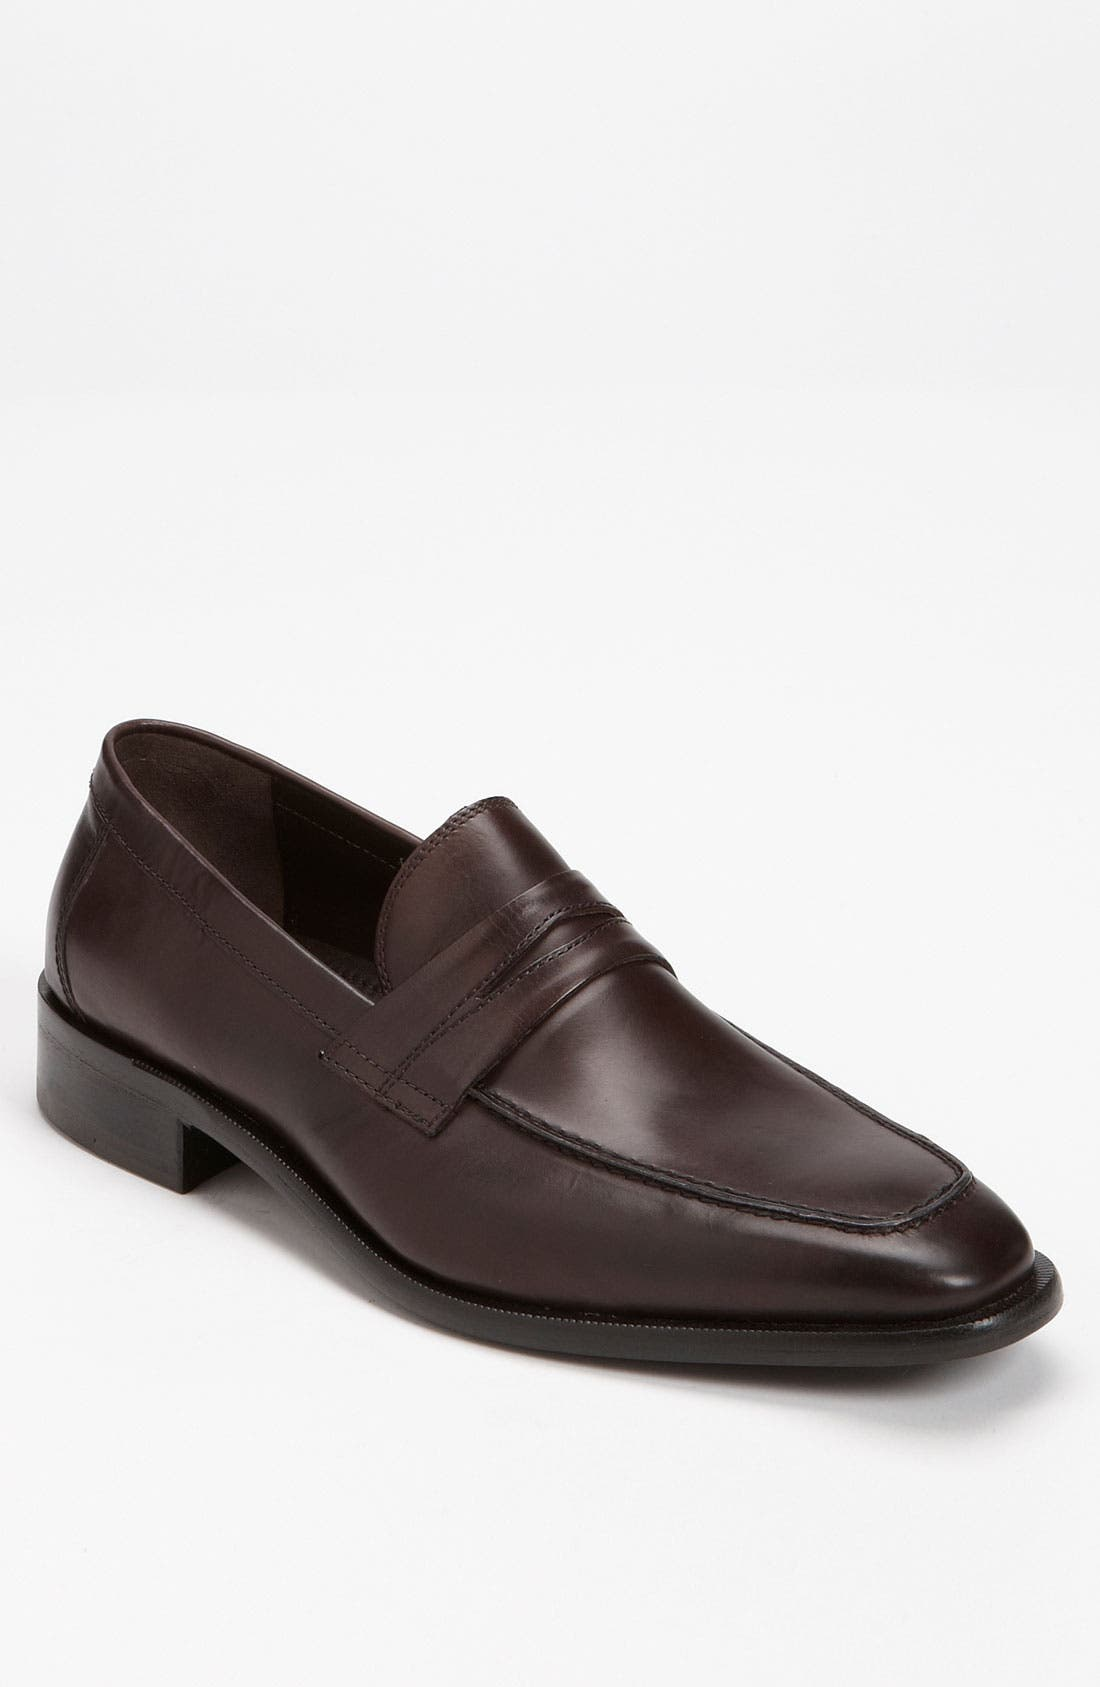 Alternate Image 1 Selected - Donald J Pliner 'Gair' Loafer